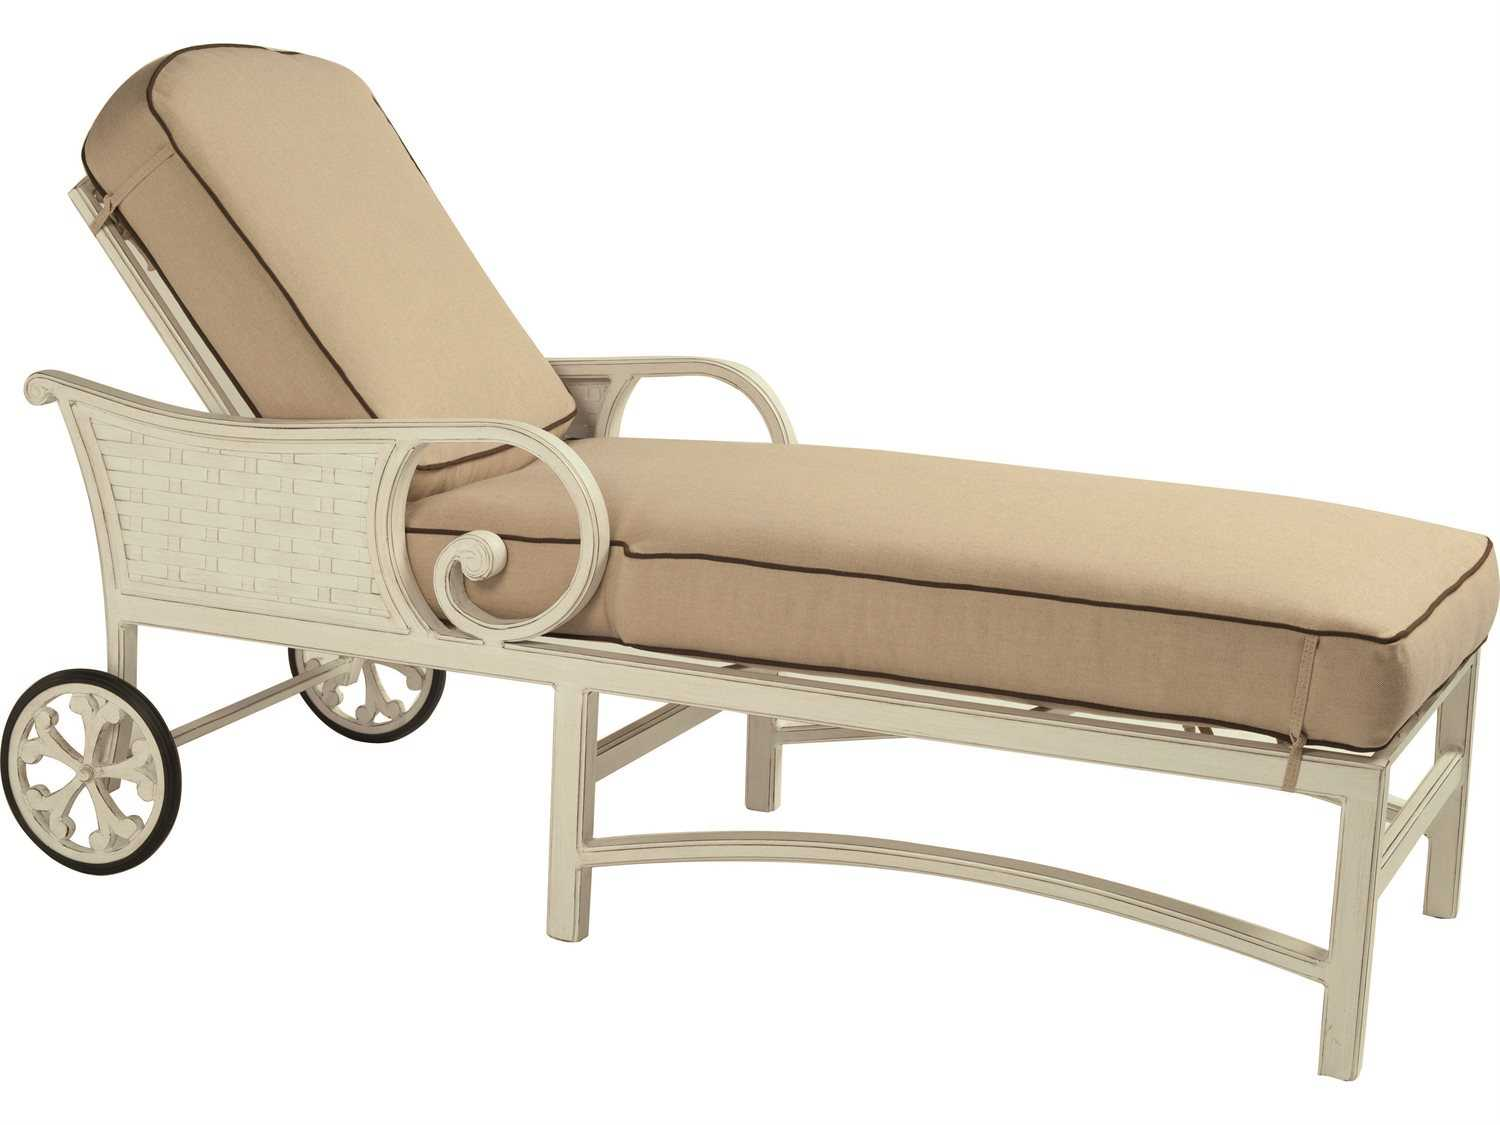 Castelle riviera cushion cast aluminum adjustable chaise for Aluminum chaise lounge with wheels